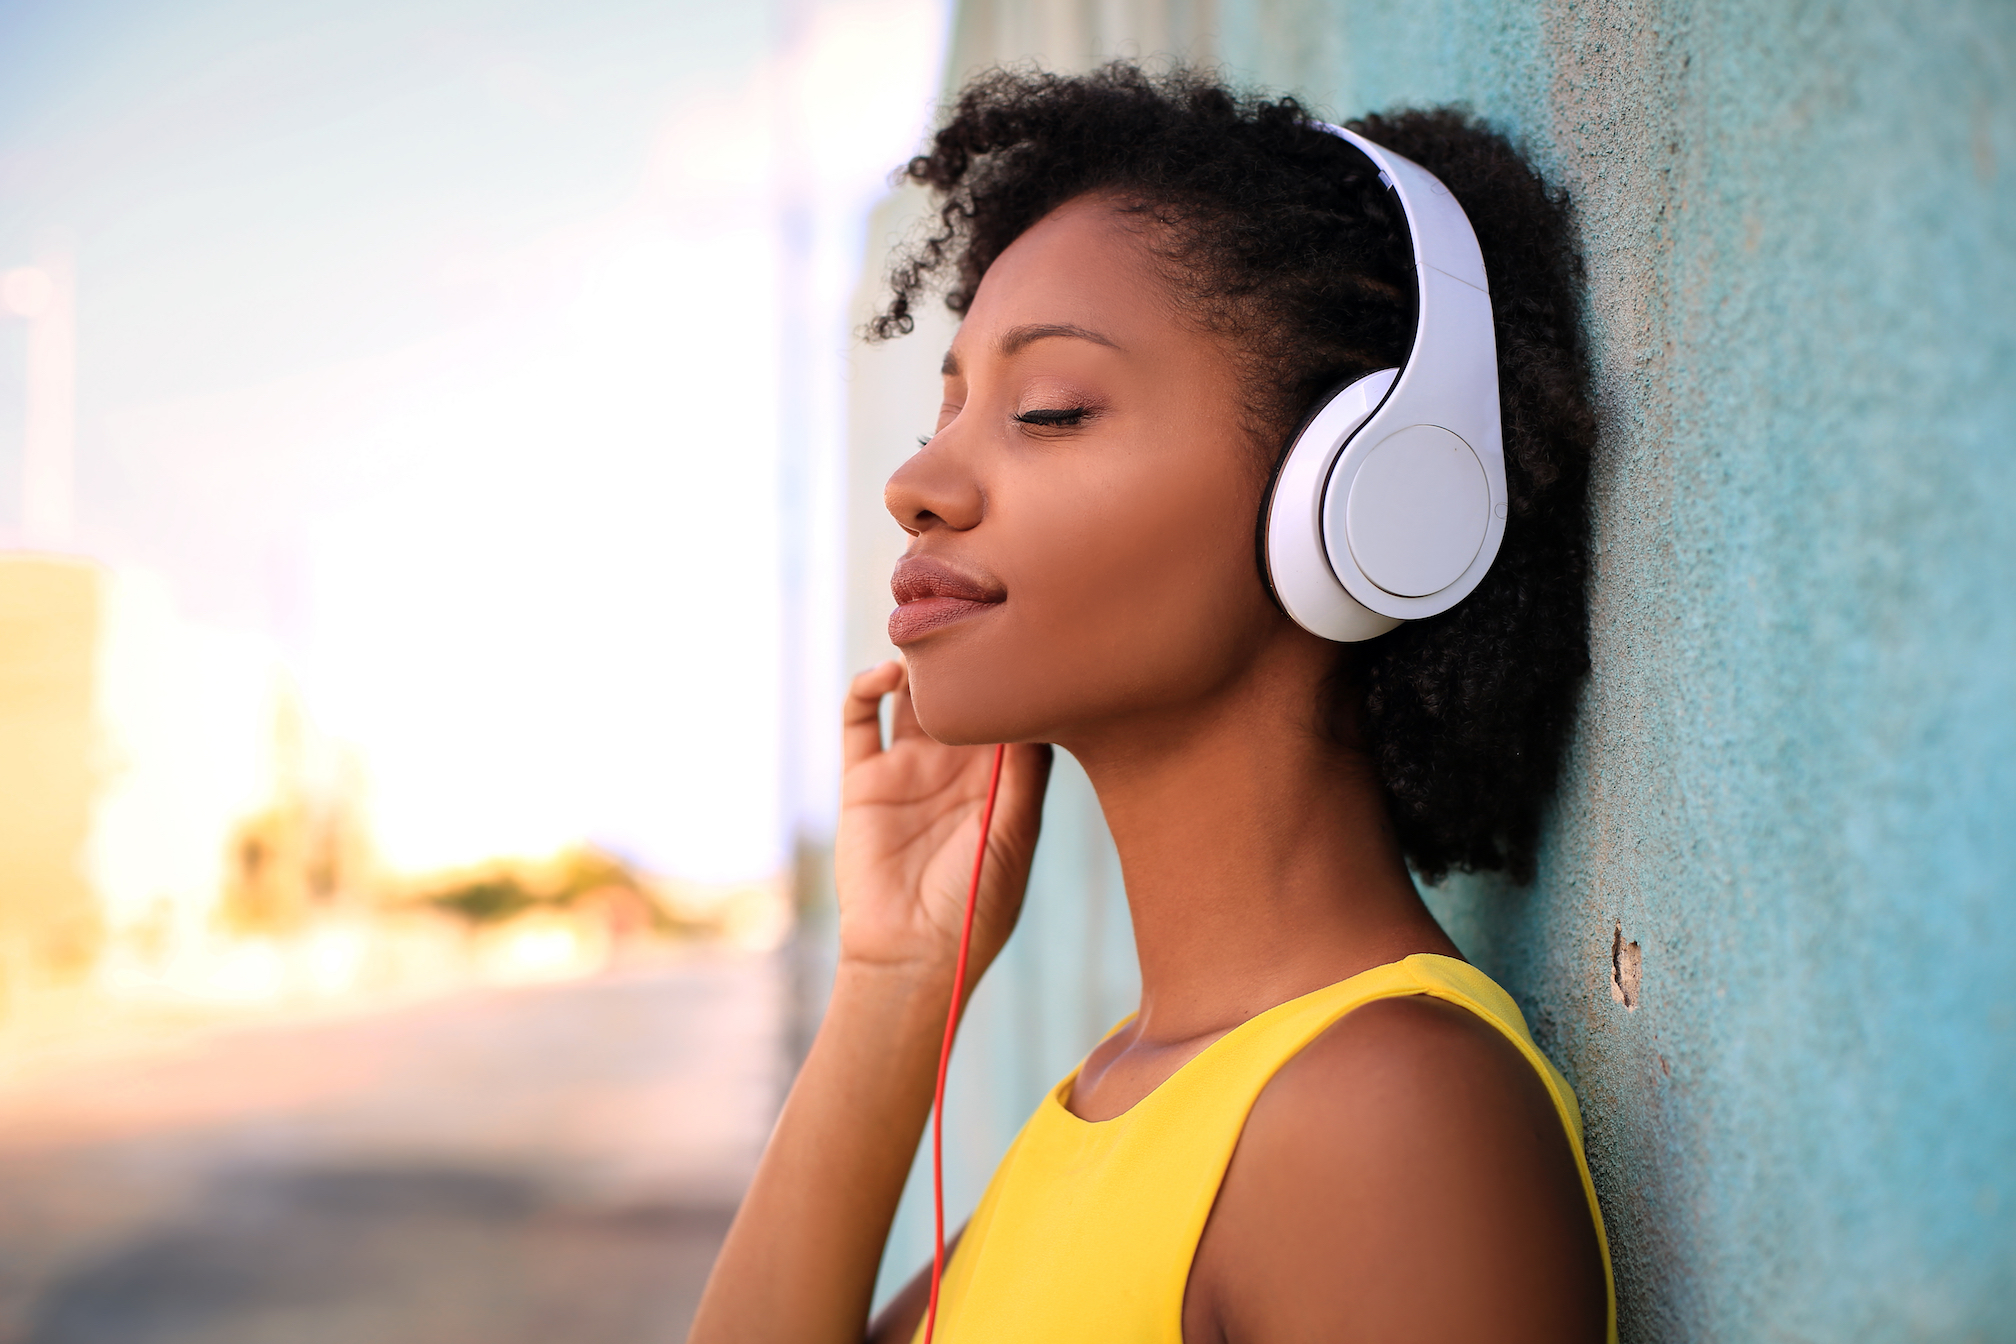 When it comes to a person's taste in music, one's preferences can be related to personal identity, but are music choices also indicative of personality traits?